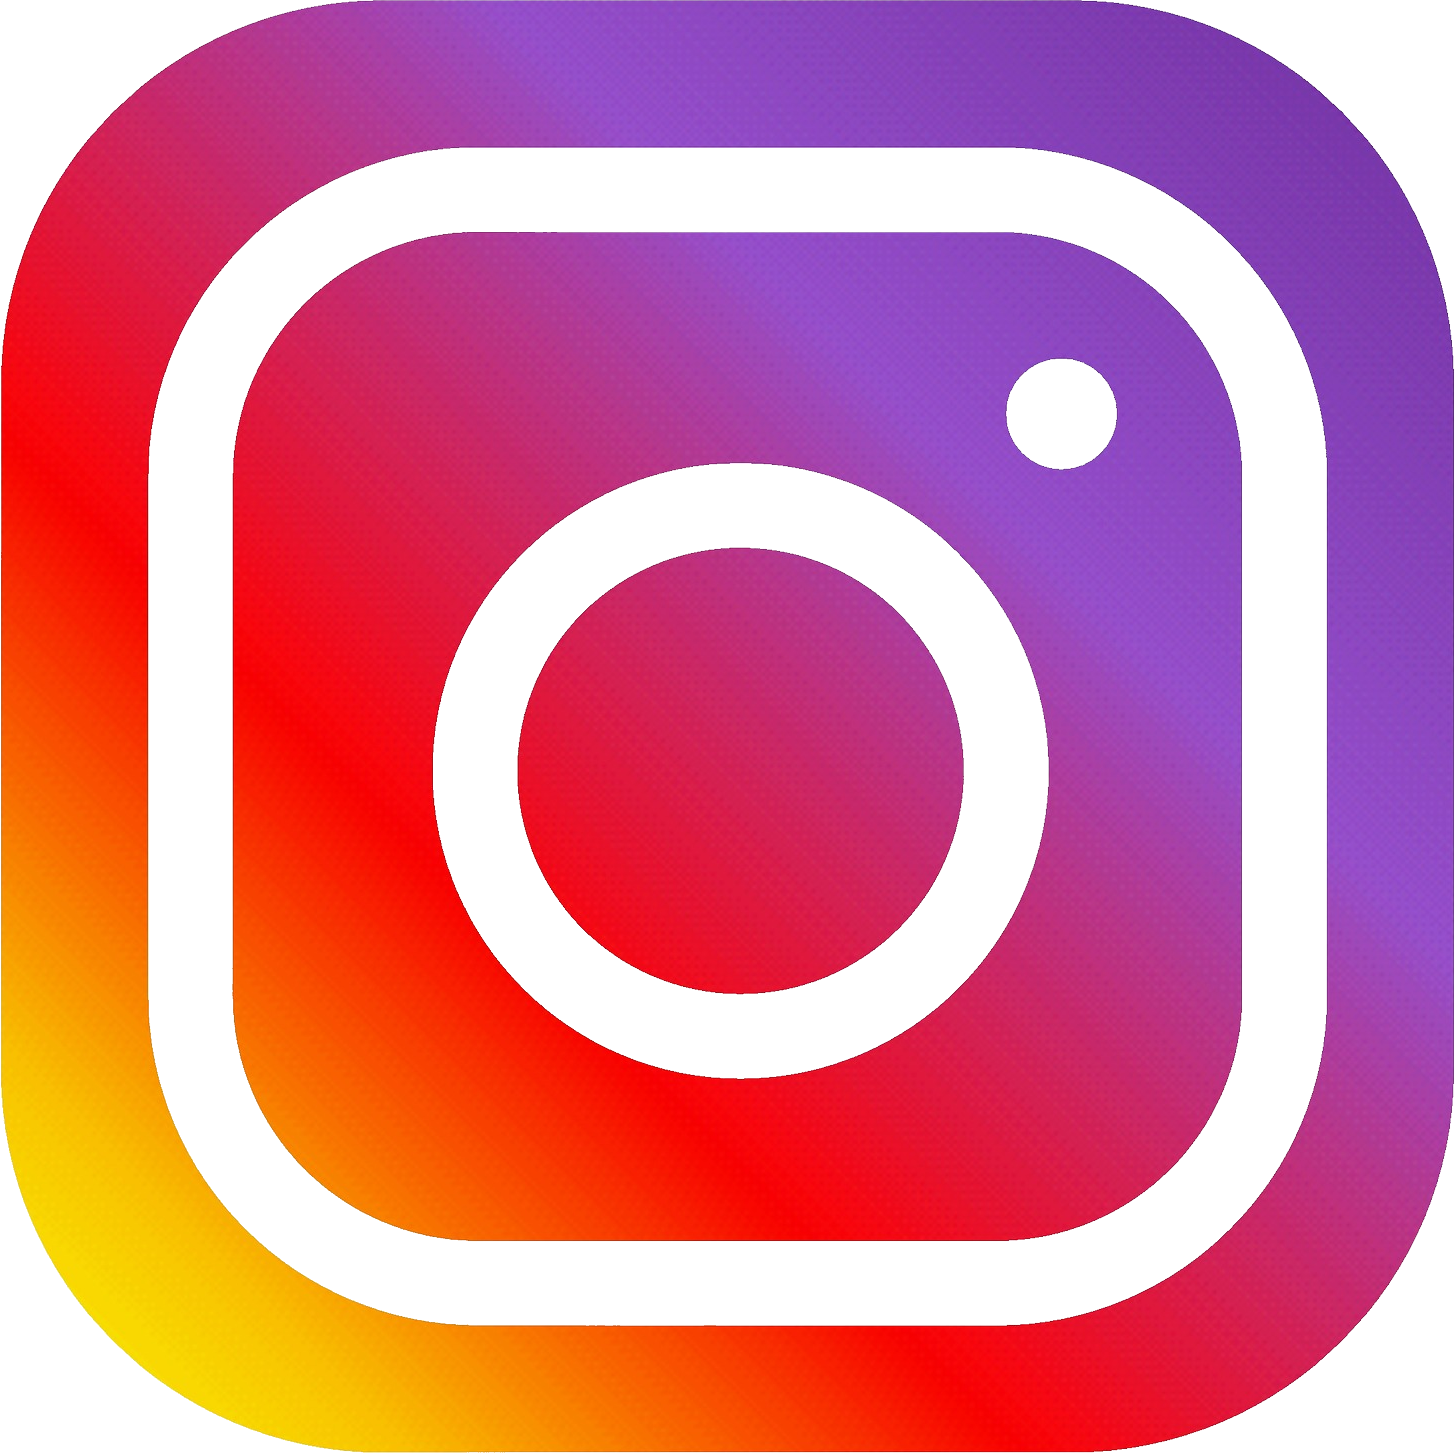 Ficheiro:Instagram-Icon.png - Wikiversidade